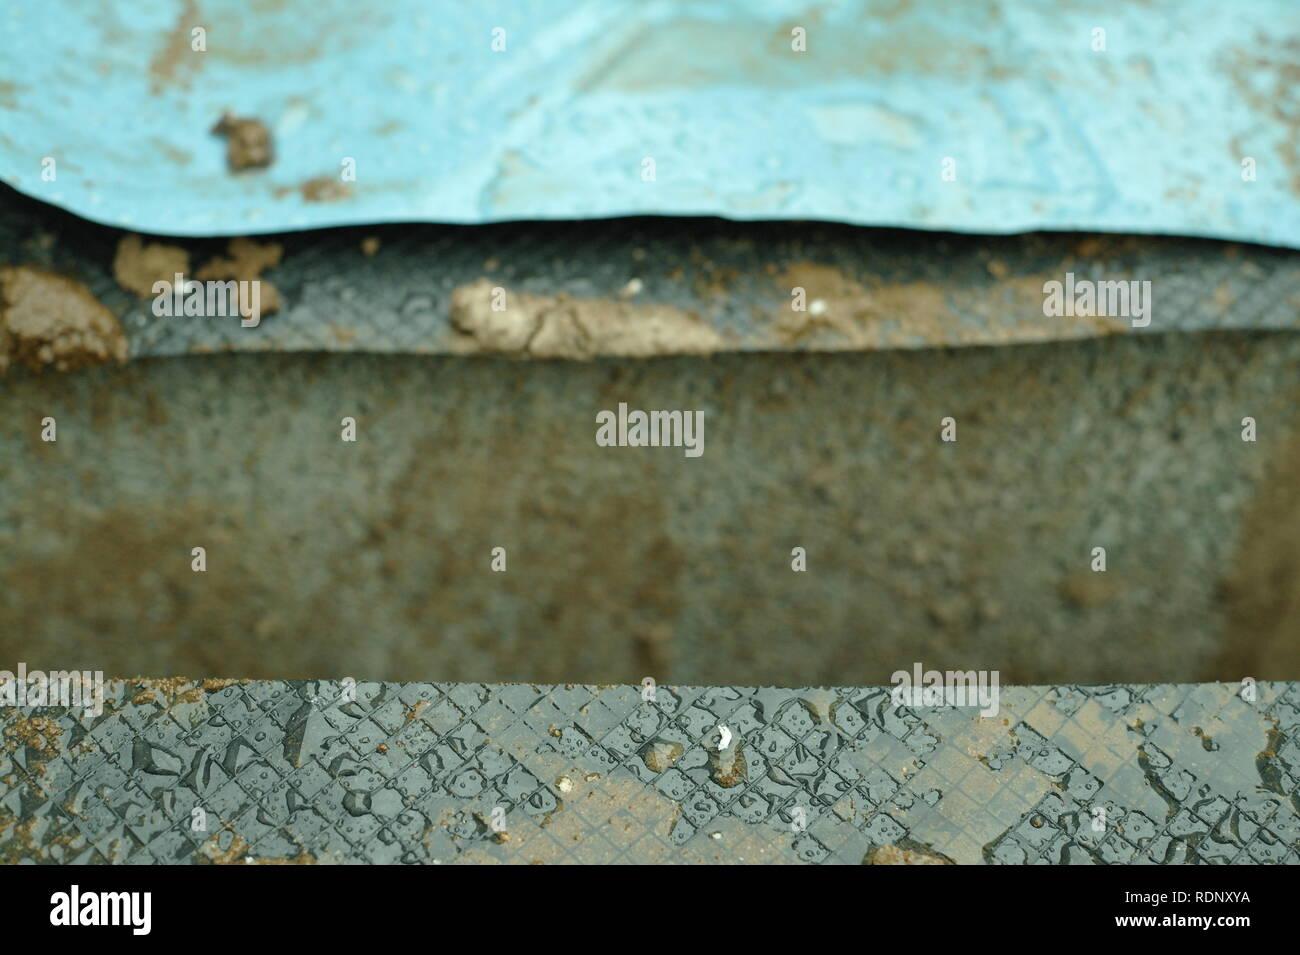 DPC damp proof course and Radon barrier sheet on new construction detail. - Stock Image